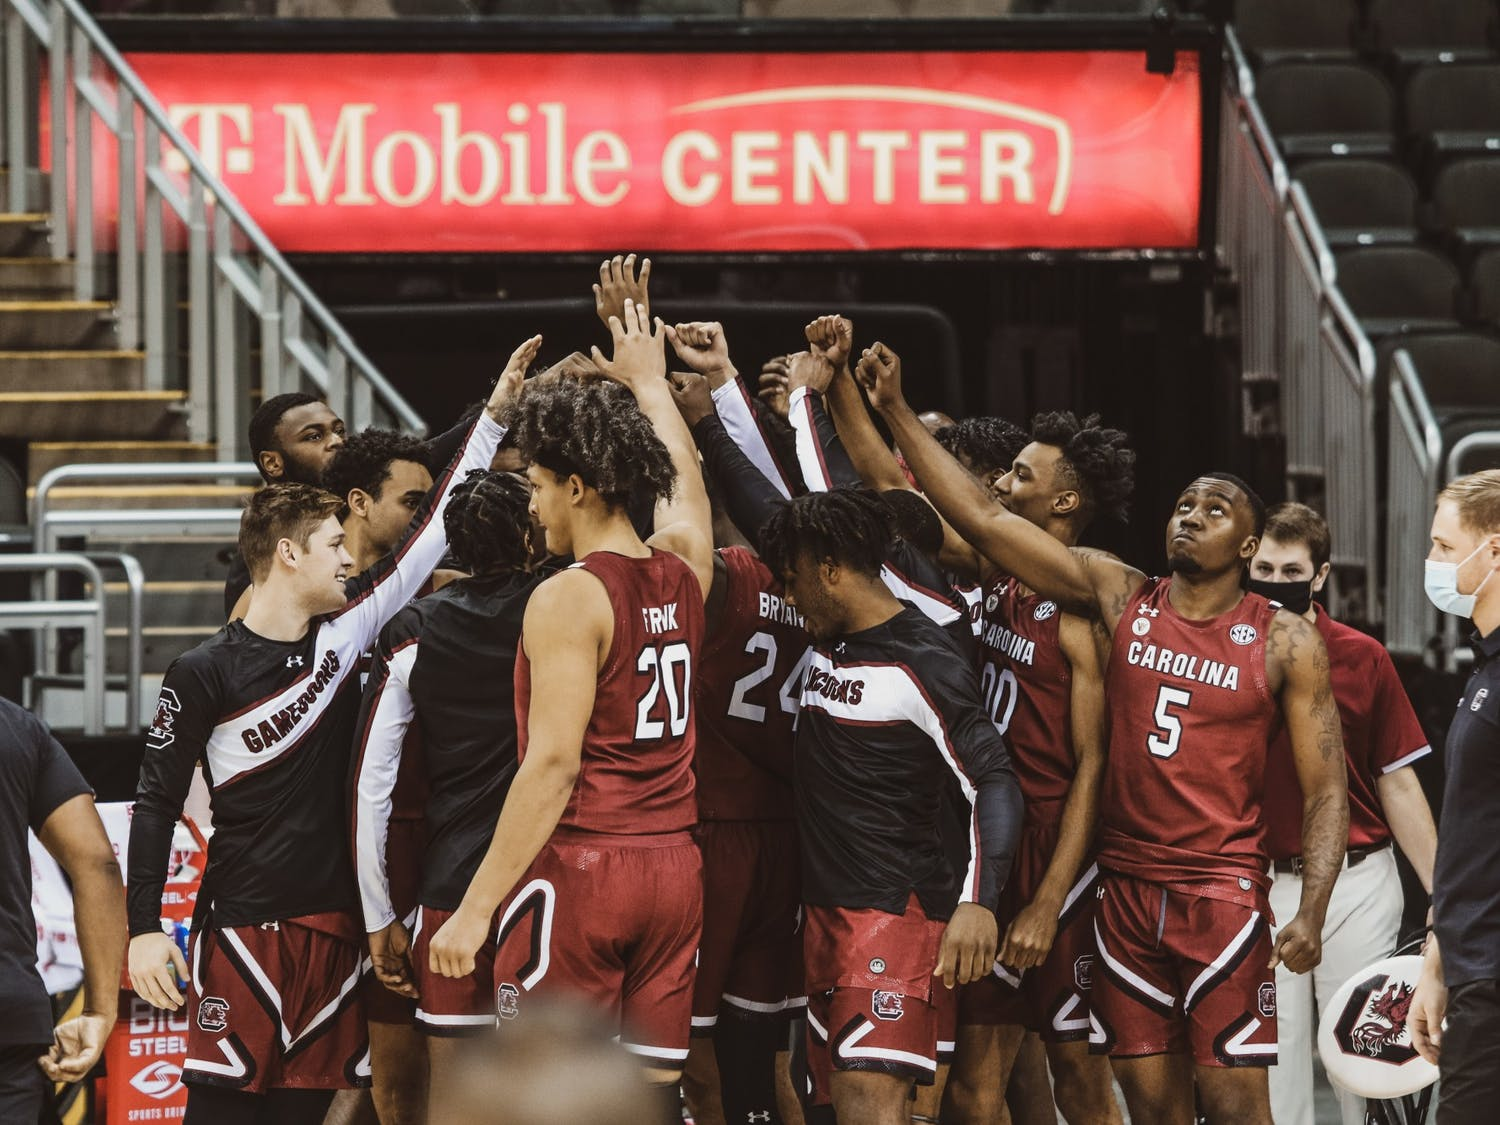 The South Carolina men's basketball team gathers during a timeout in a November game against Liberty. The team is now facing their third COVID-19-related pause of activities this season.